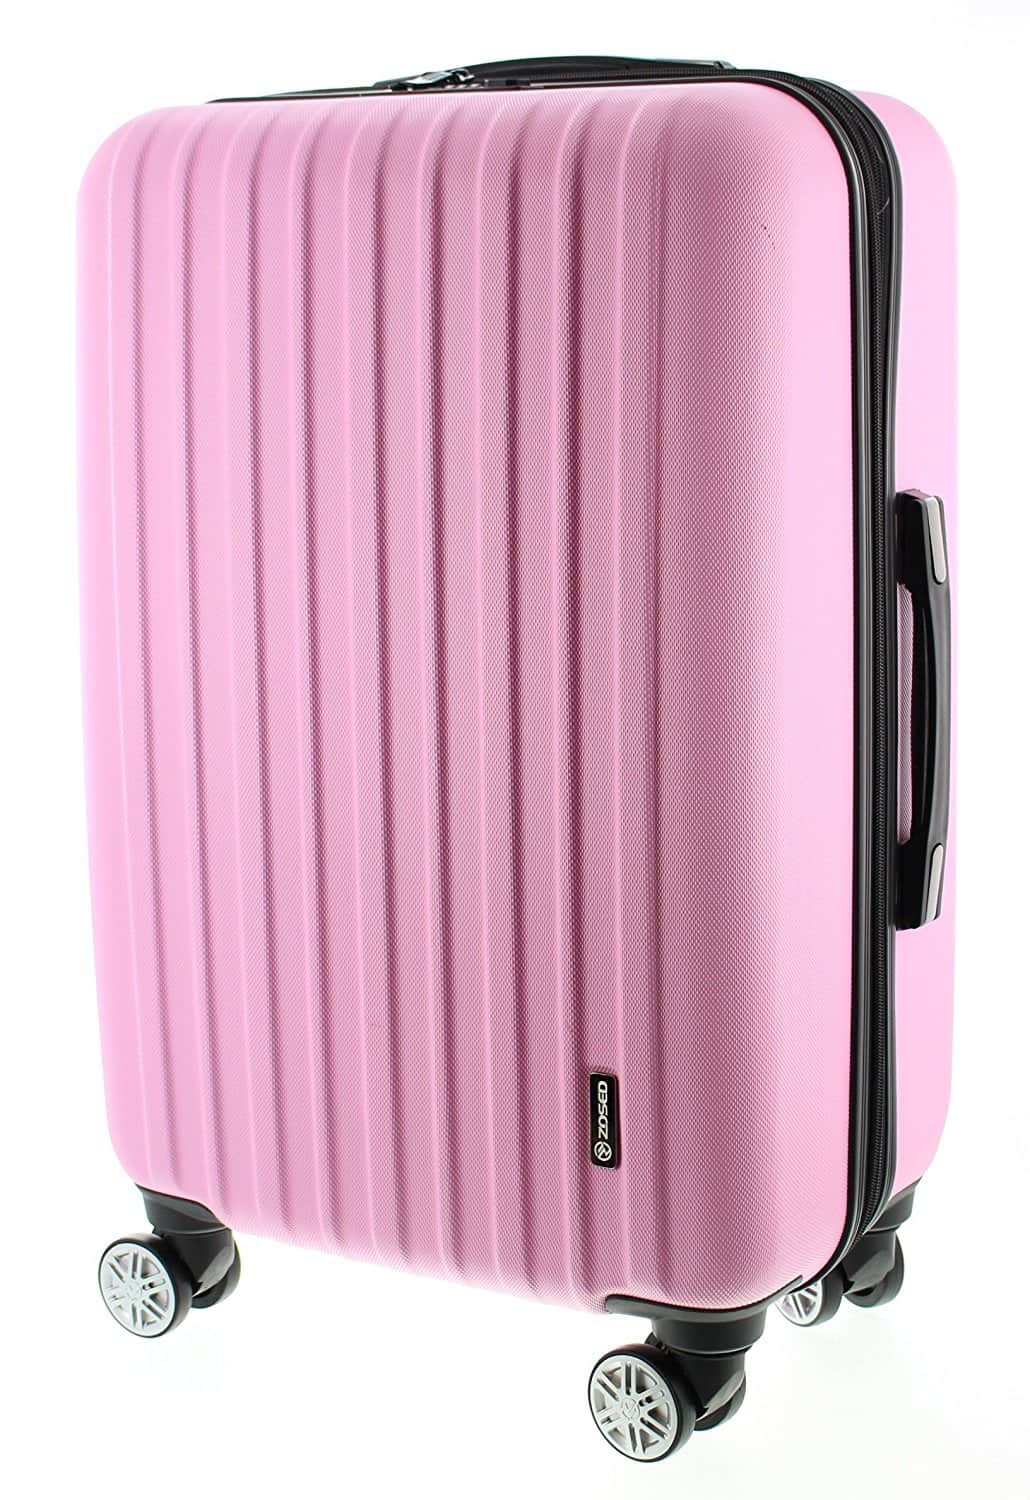 valise rose a roues